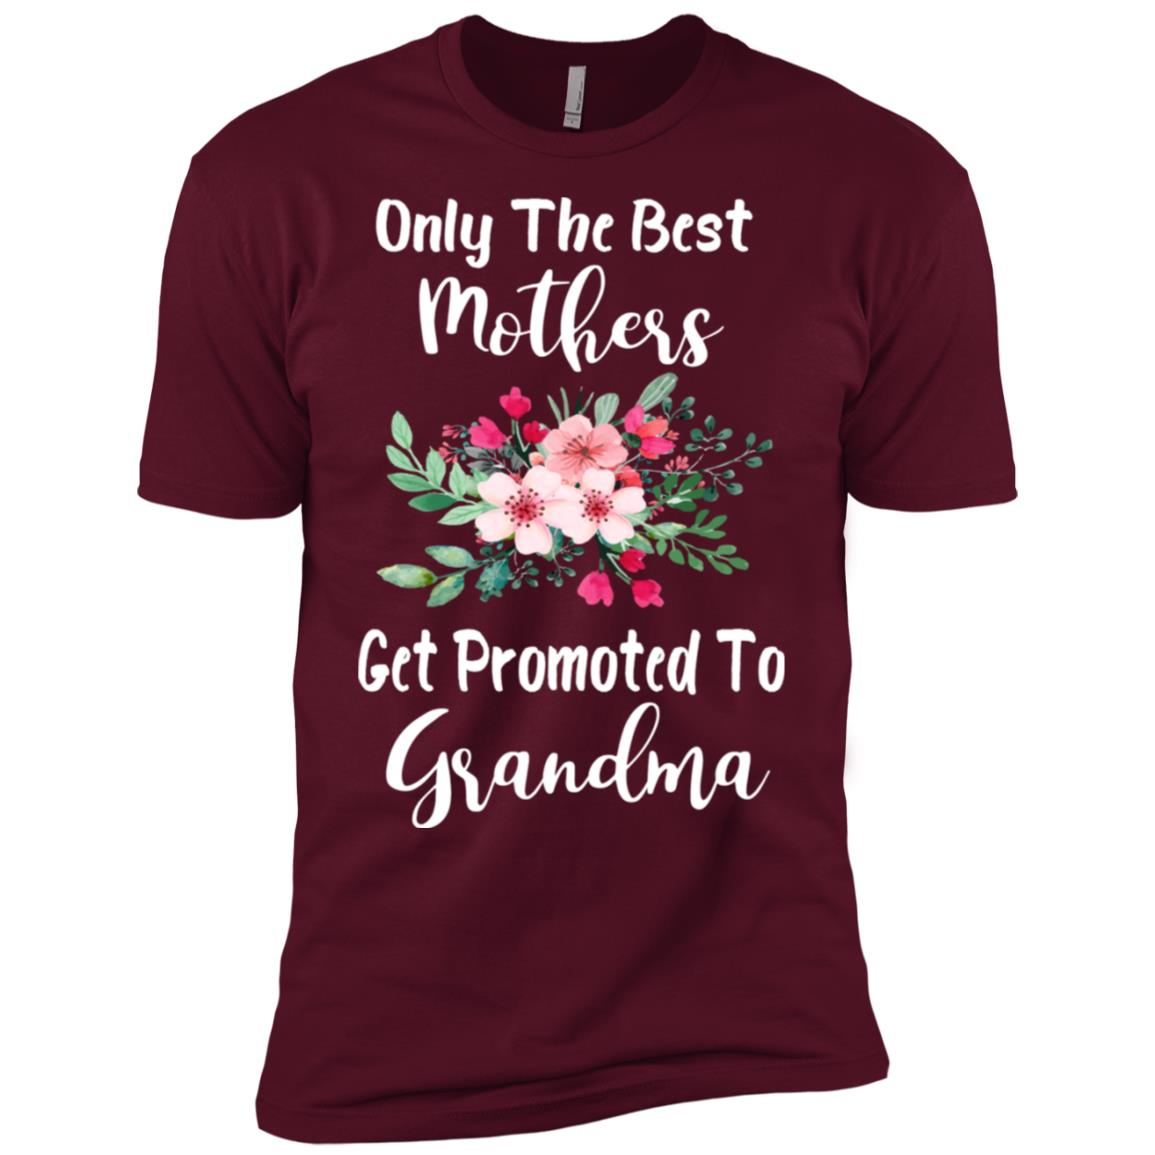 Only The Best Mothers Get Promoted To Grandmas Men Short Sleeve T-Shirt